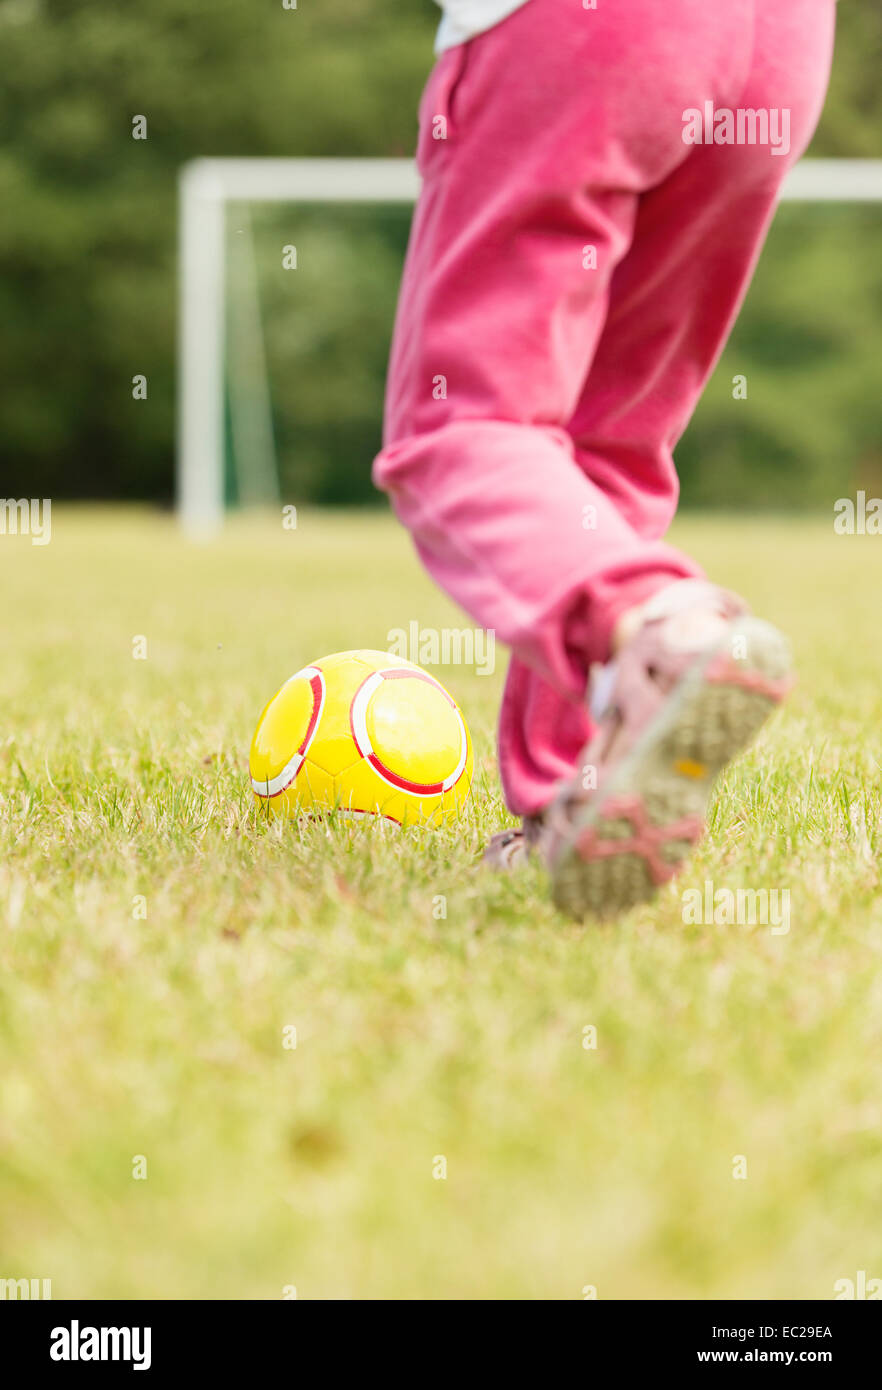 Girl in pink pants playing soccer, kicking a yellow football in front of goal. - Stock Image